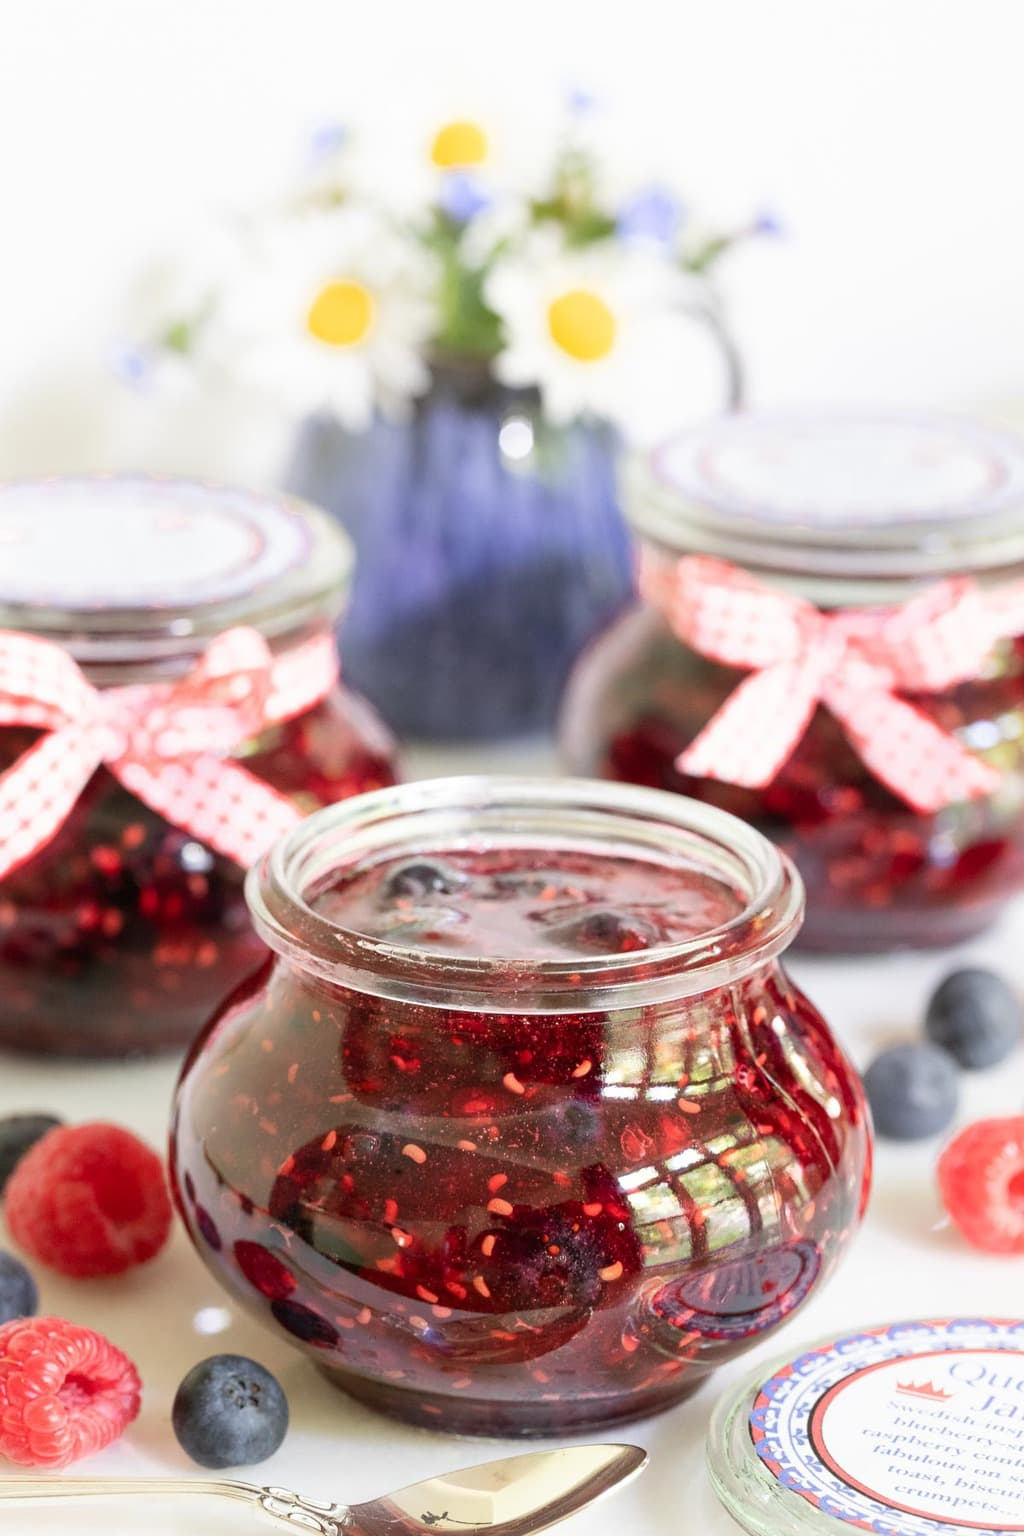 Vertical photo of jars of Queen's Jam (Raspberry Blueberry Jam) surrounded by fresh berries.